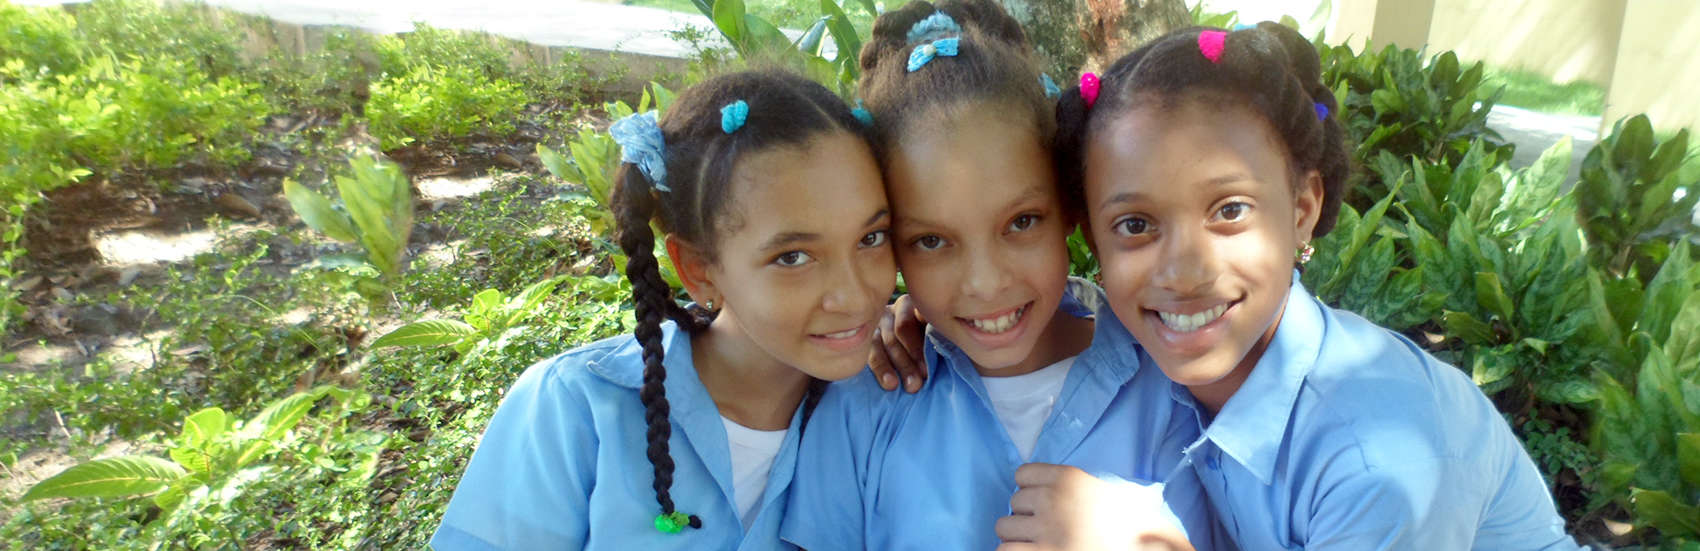 Three school-aged girls attend a Save the Children program at a school in Dajabon, Dominican Republic. Photo credit: Aneliya Nikolova/Save the Children, July 2016.